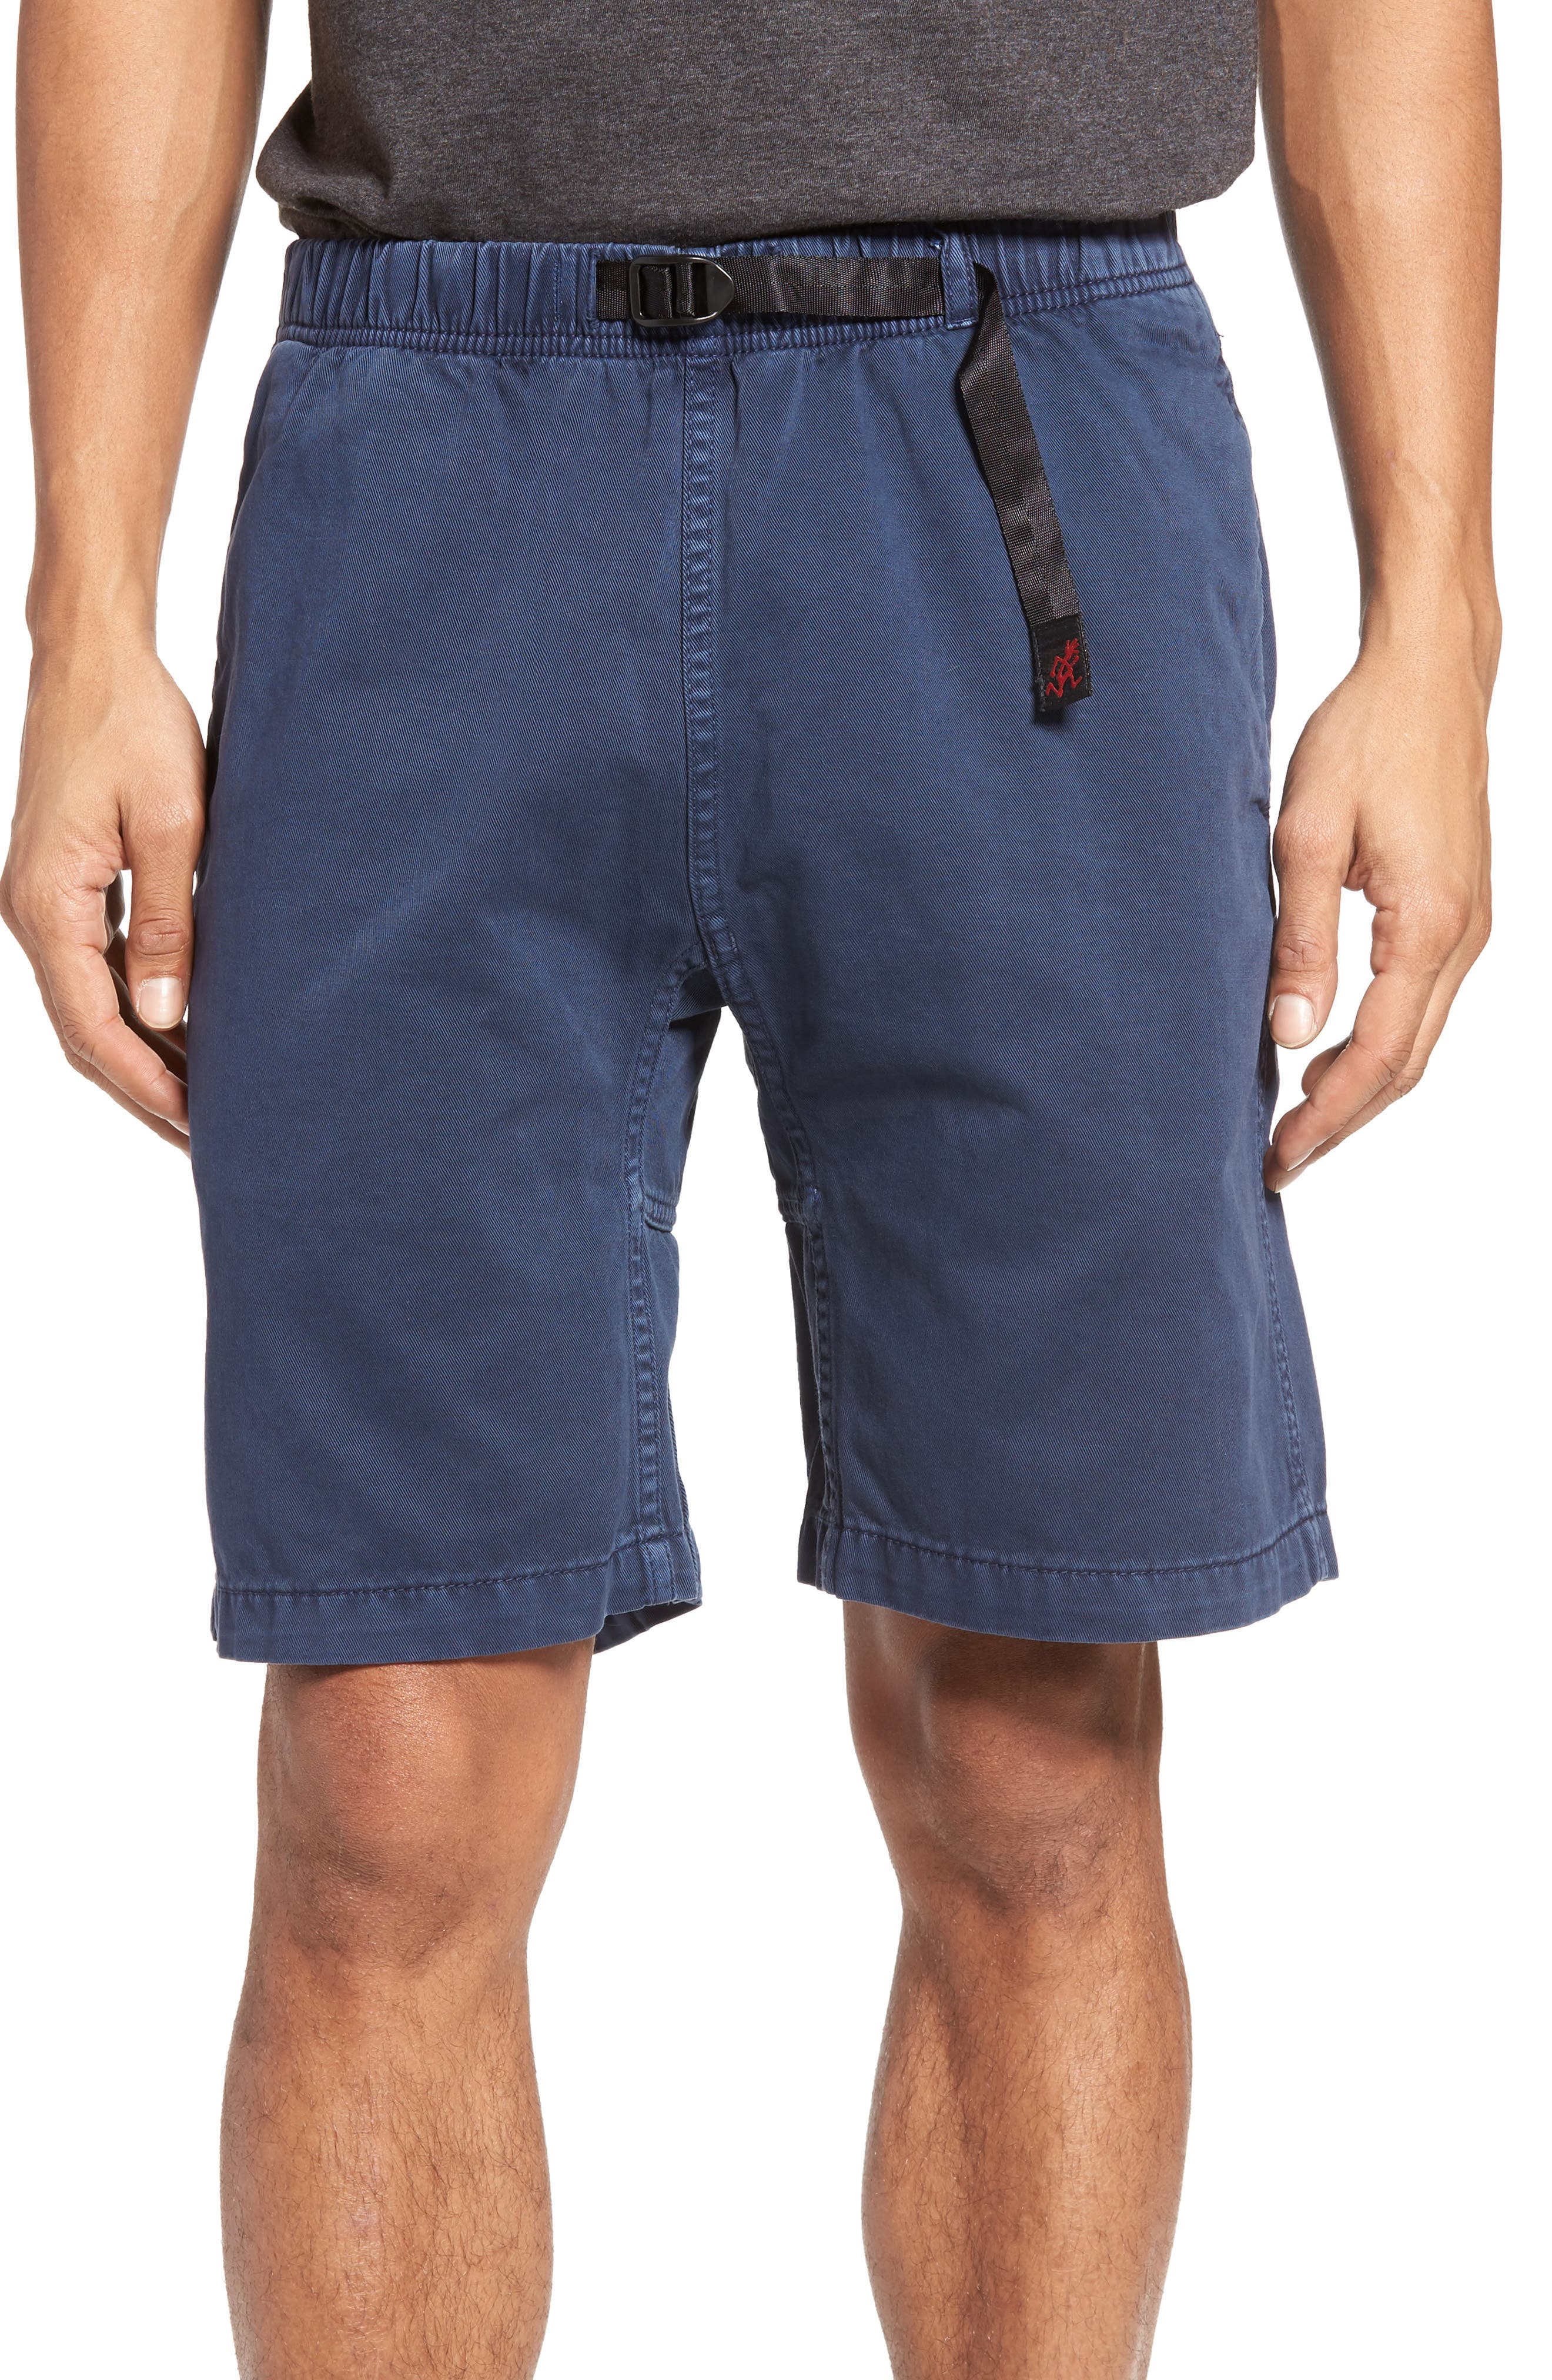 Rockin Sport Shorts,                             Main thumbnail 5, color,